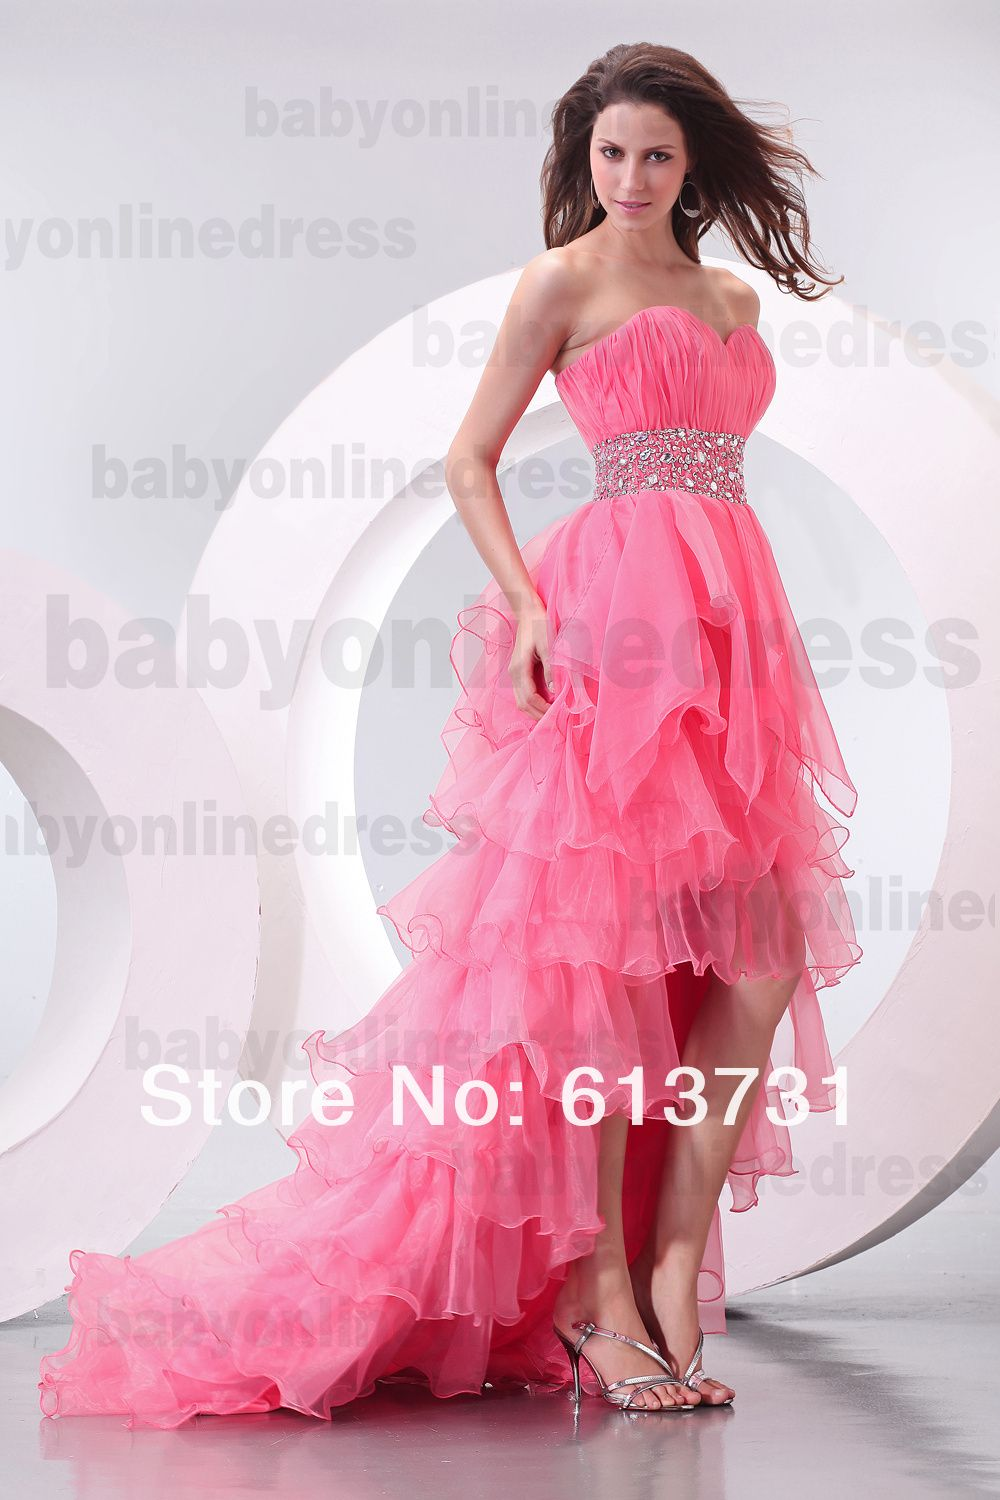 Experience of Buying Pink Party Dresses | dresses | Pinterest | Pink ...